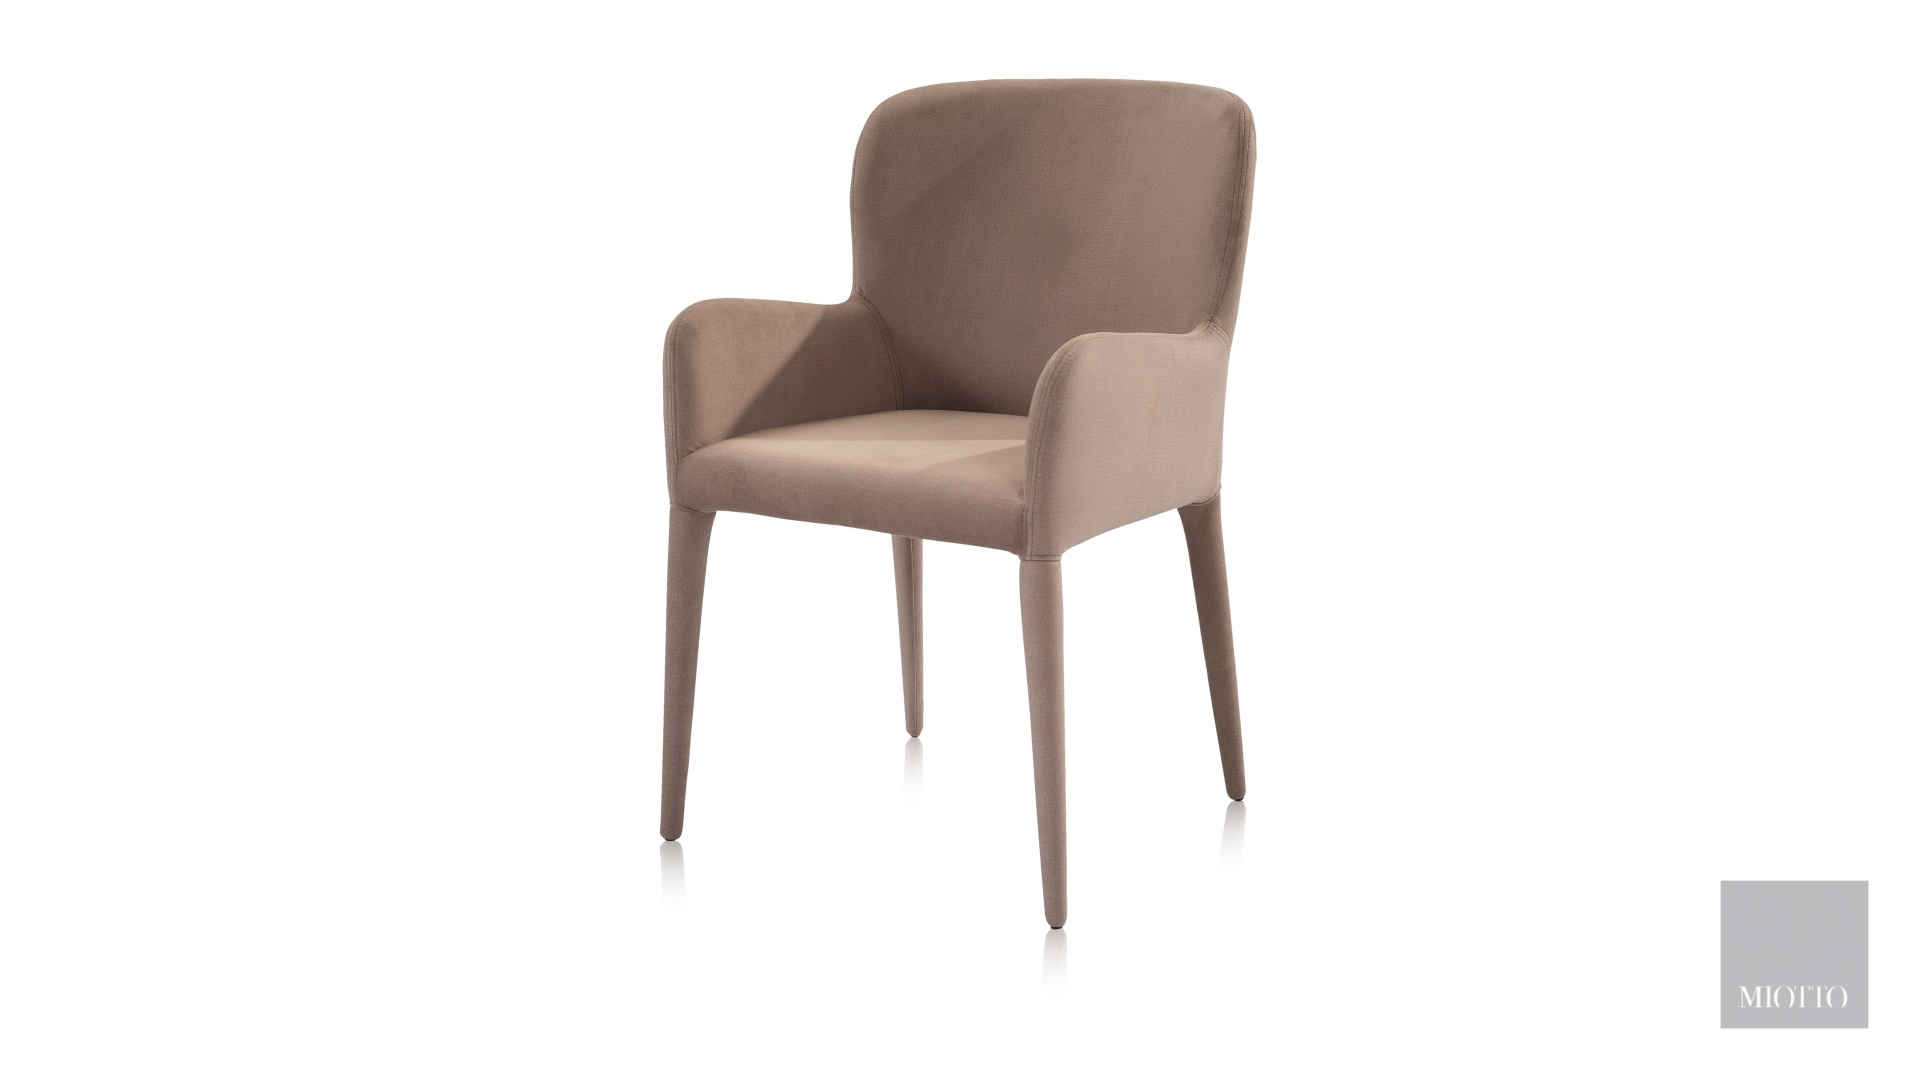 miotto_Aviano dining armchair taupe miotto furniture